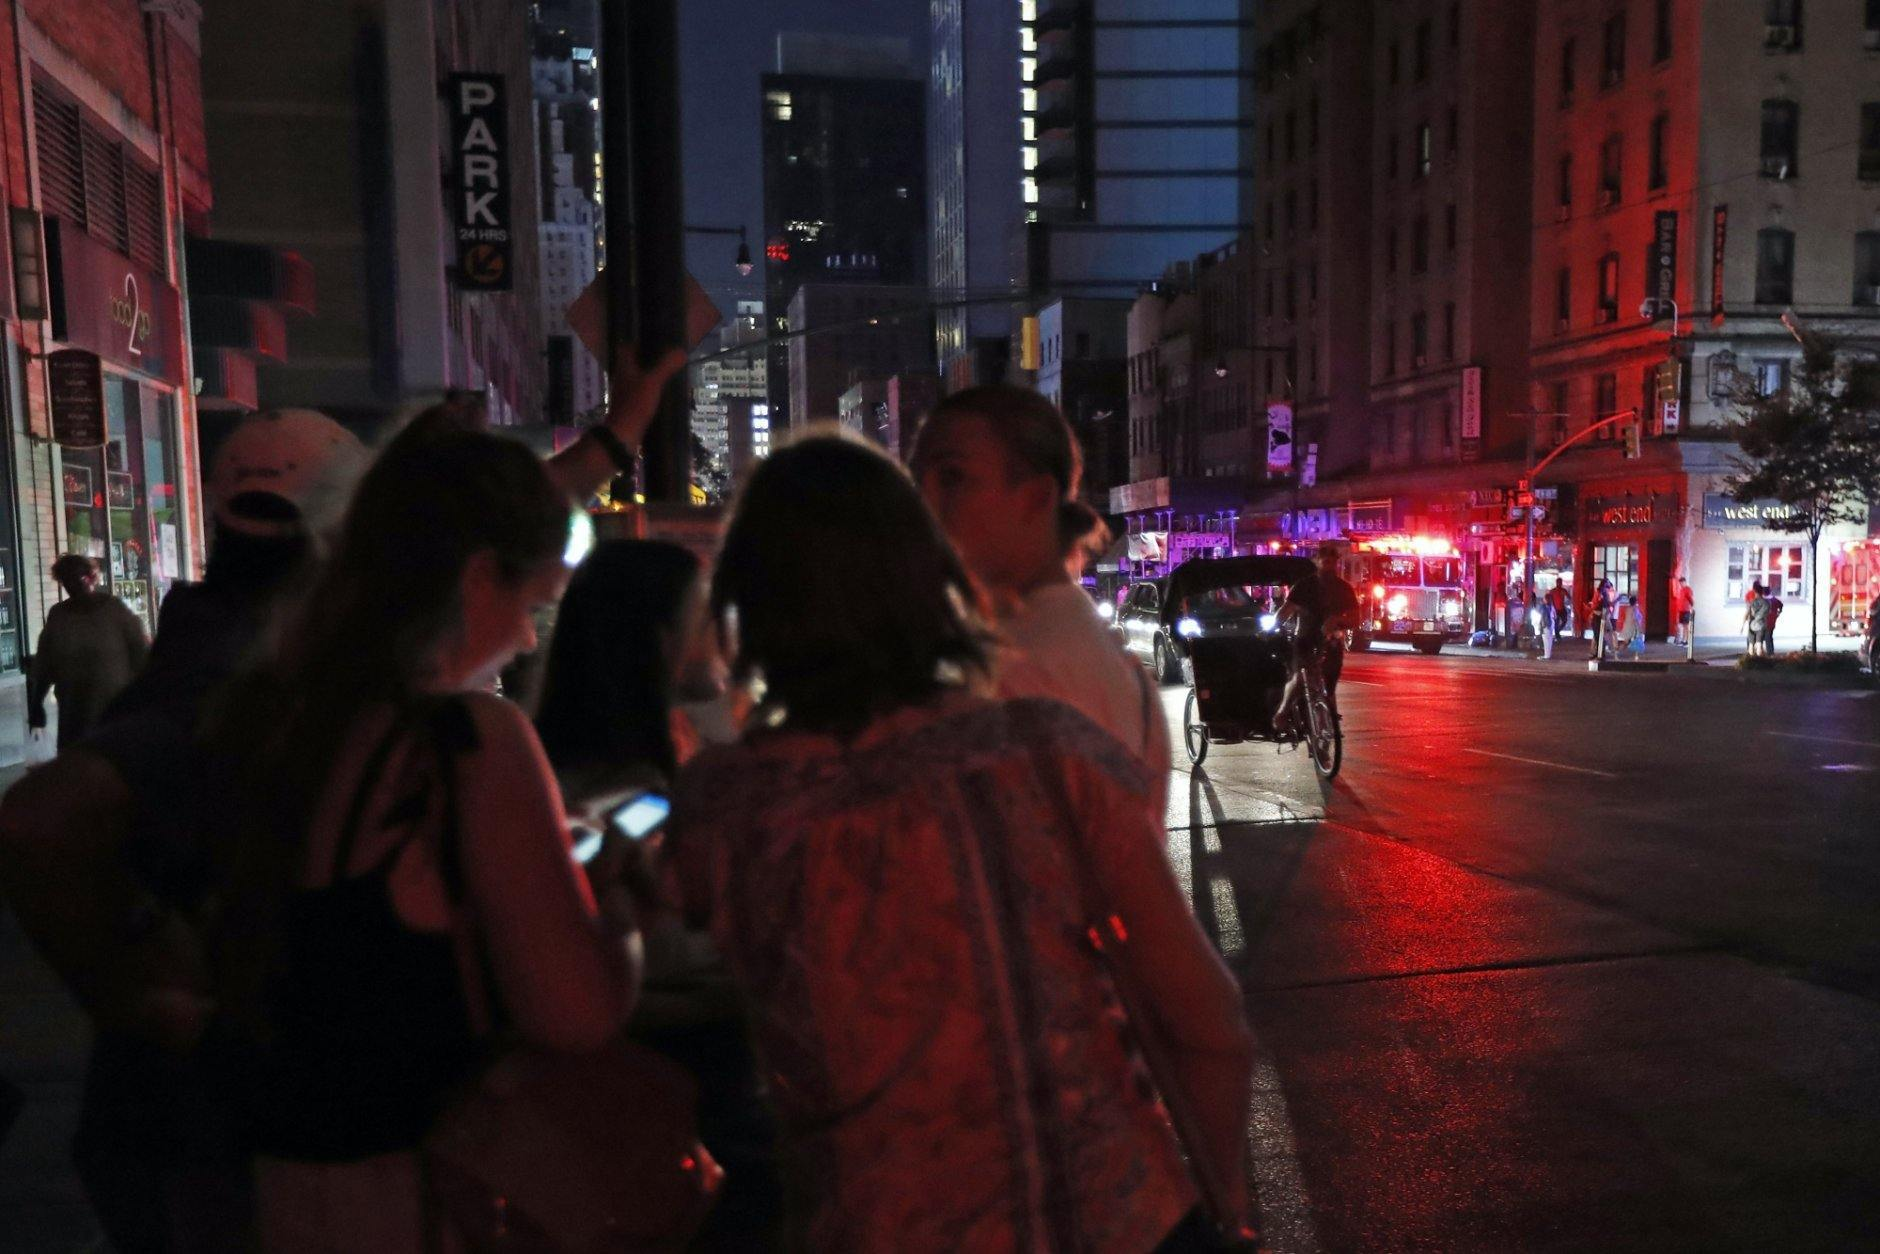 People gather in midtown Manhattan during a widespread power outage, Saturday, July 13, 2019, in New York. Authorities were scrambling to restore electricity to Manhattan following a power outage that knocked out Times Square's towering electronic screens, darkened marquees in the theater district and left businesses without electricity, elevators stuck and subway cars stalled. (AP Photo/Michael Owens)